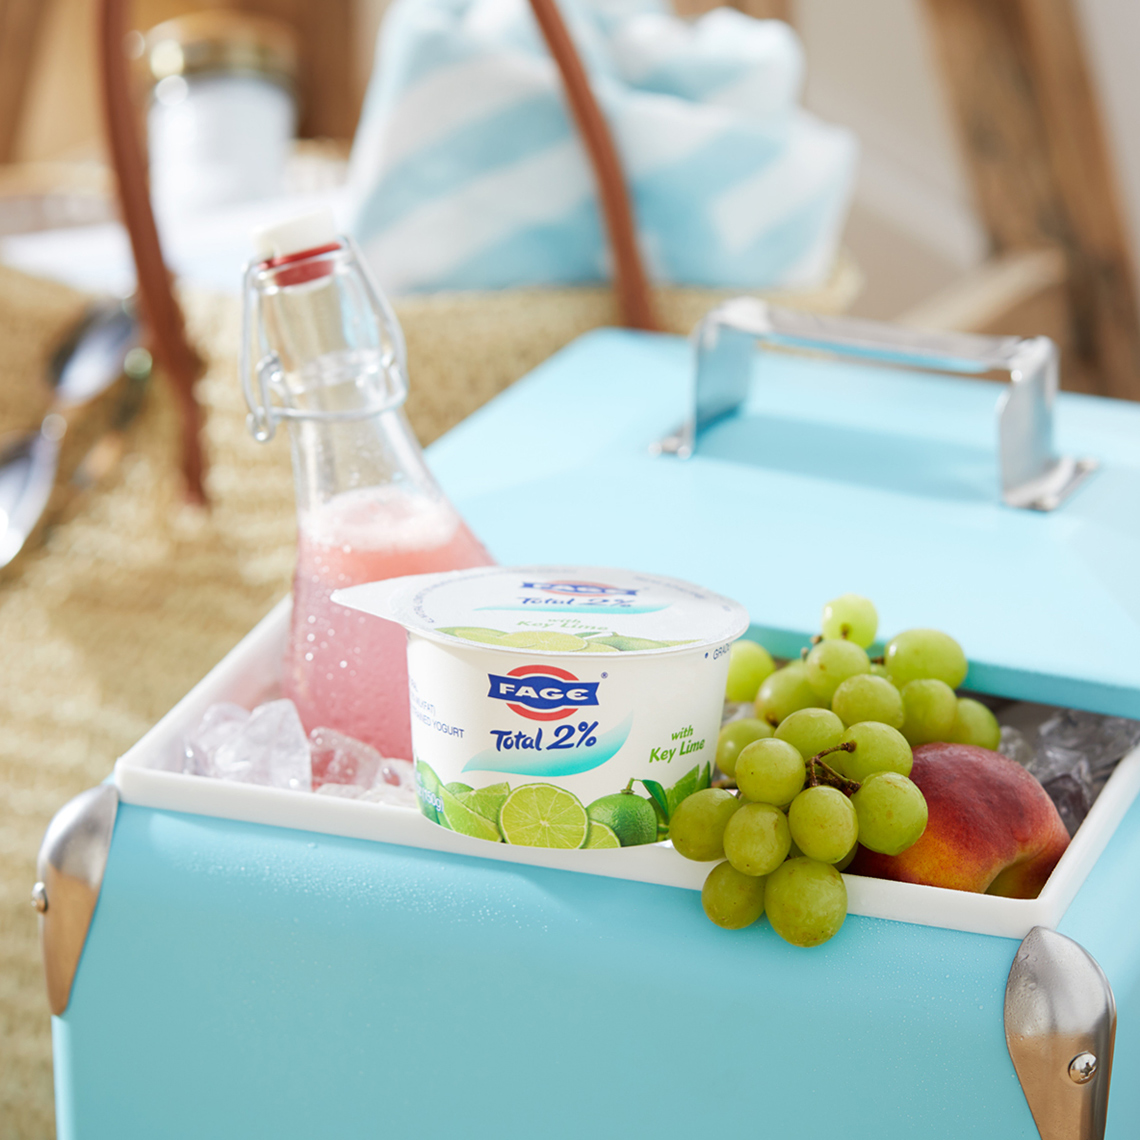 FAGE Cooler RattanTote